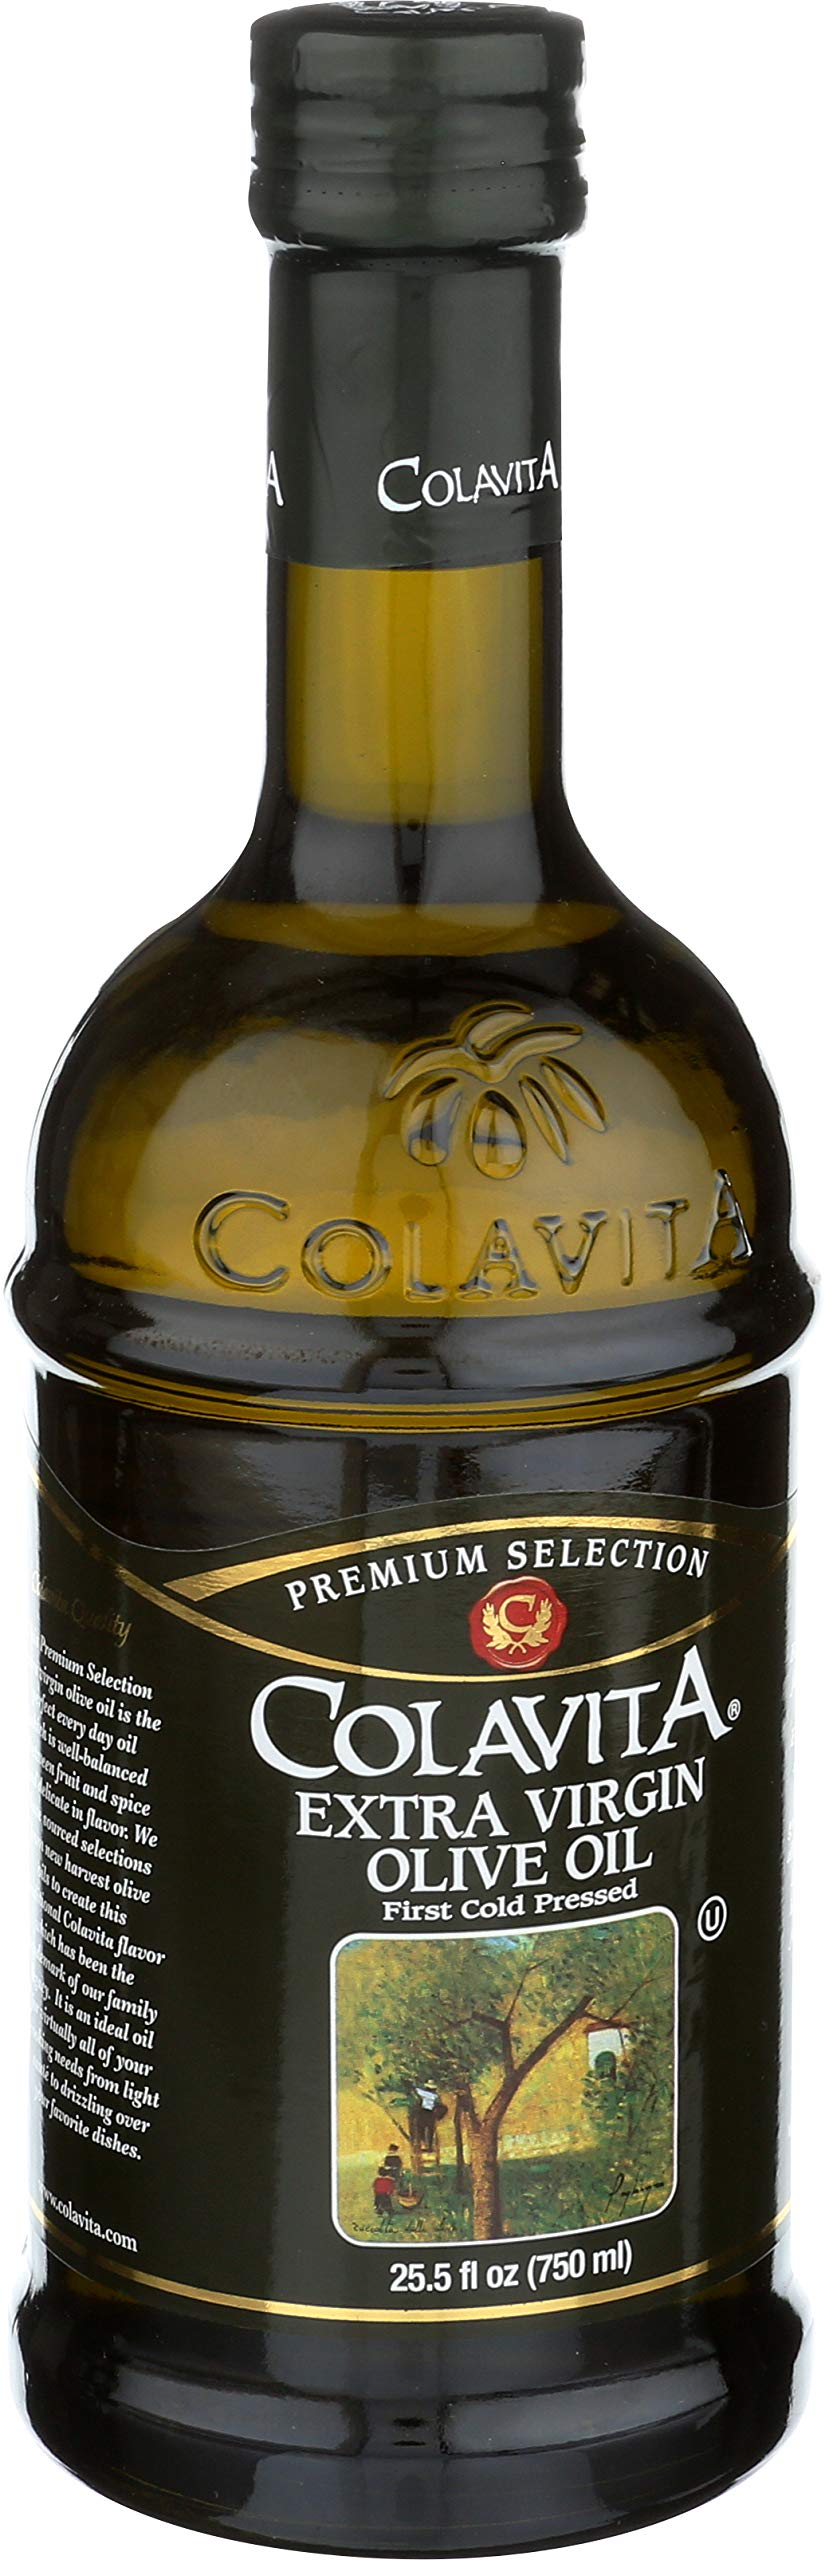 Colavita Extra Virgin Olive Oil Special, 25.5 Ounce (Pack of 2) by Colavita (Image #6)